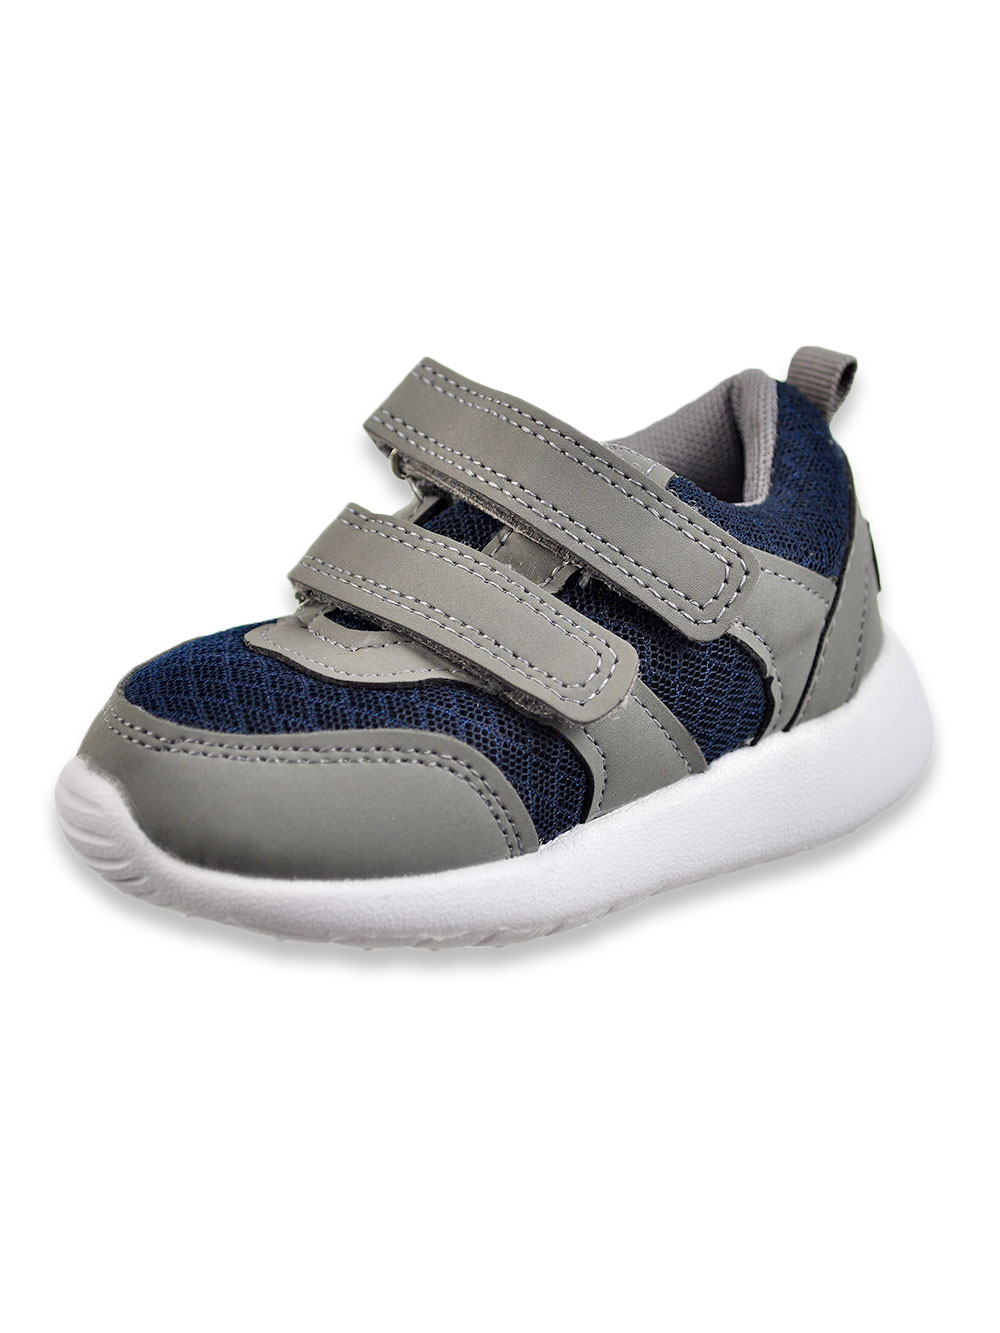 Boys Navy Sneakers and Booties